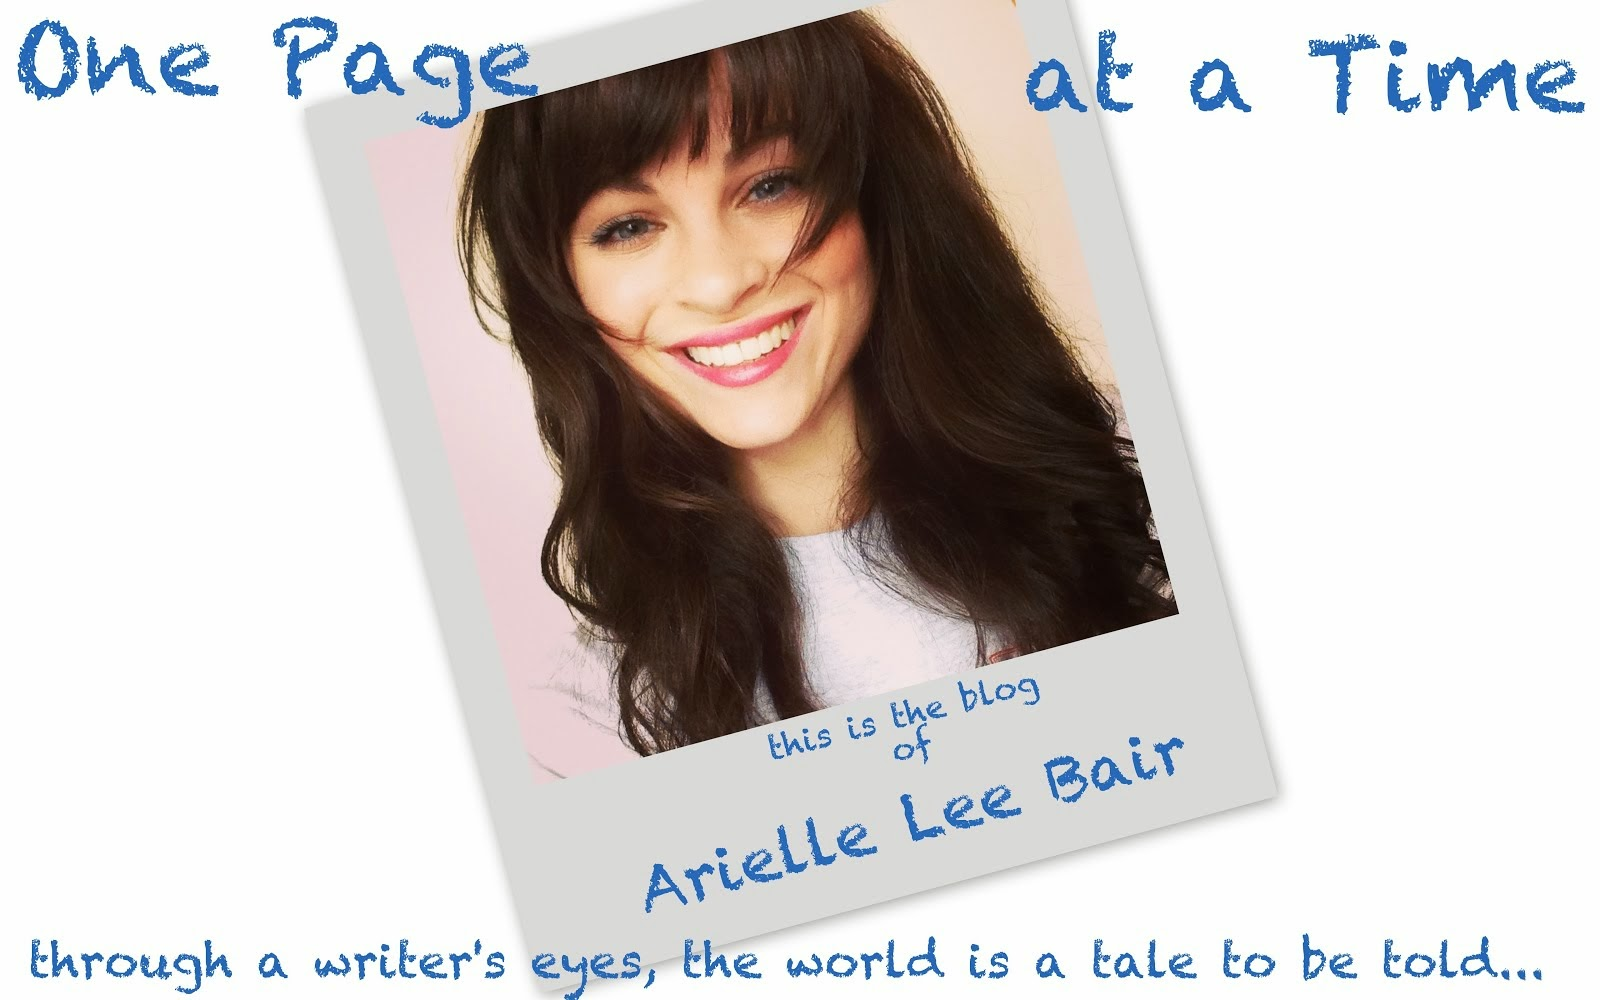 Curious about this site's author? Follow her personal blog here: